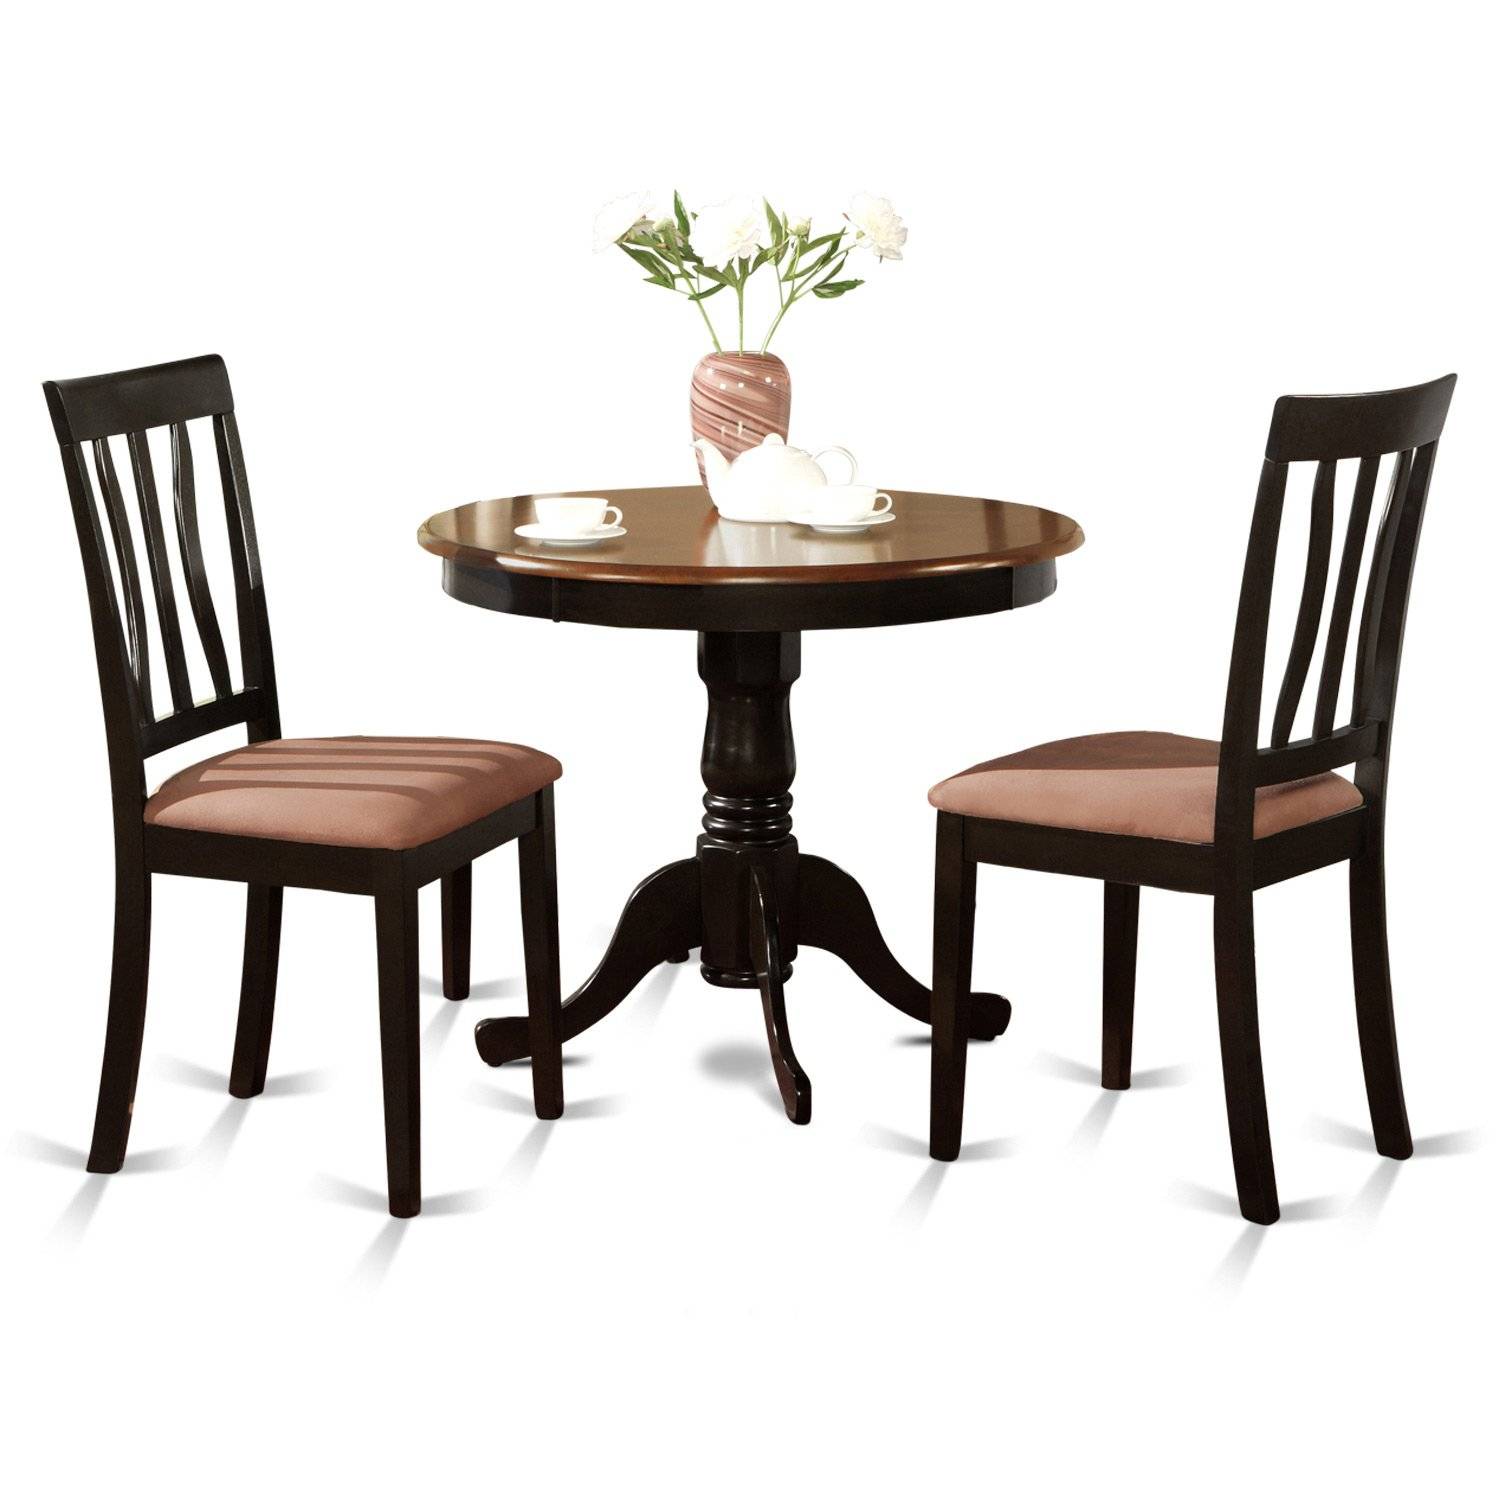 East West Furniture ANTI3-BLK-C 3-Piece Kitchen Table Set, Black/Cherry Finish by East West Furniture